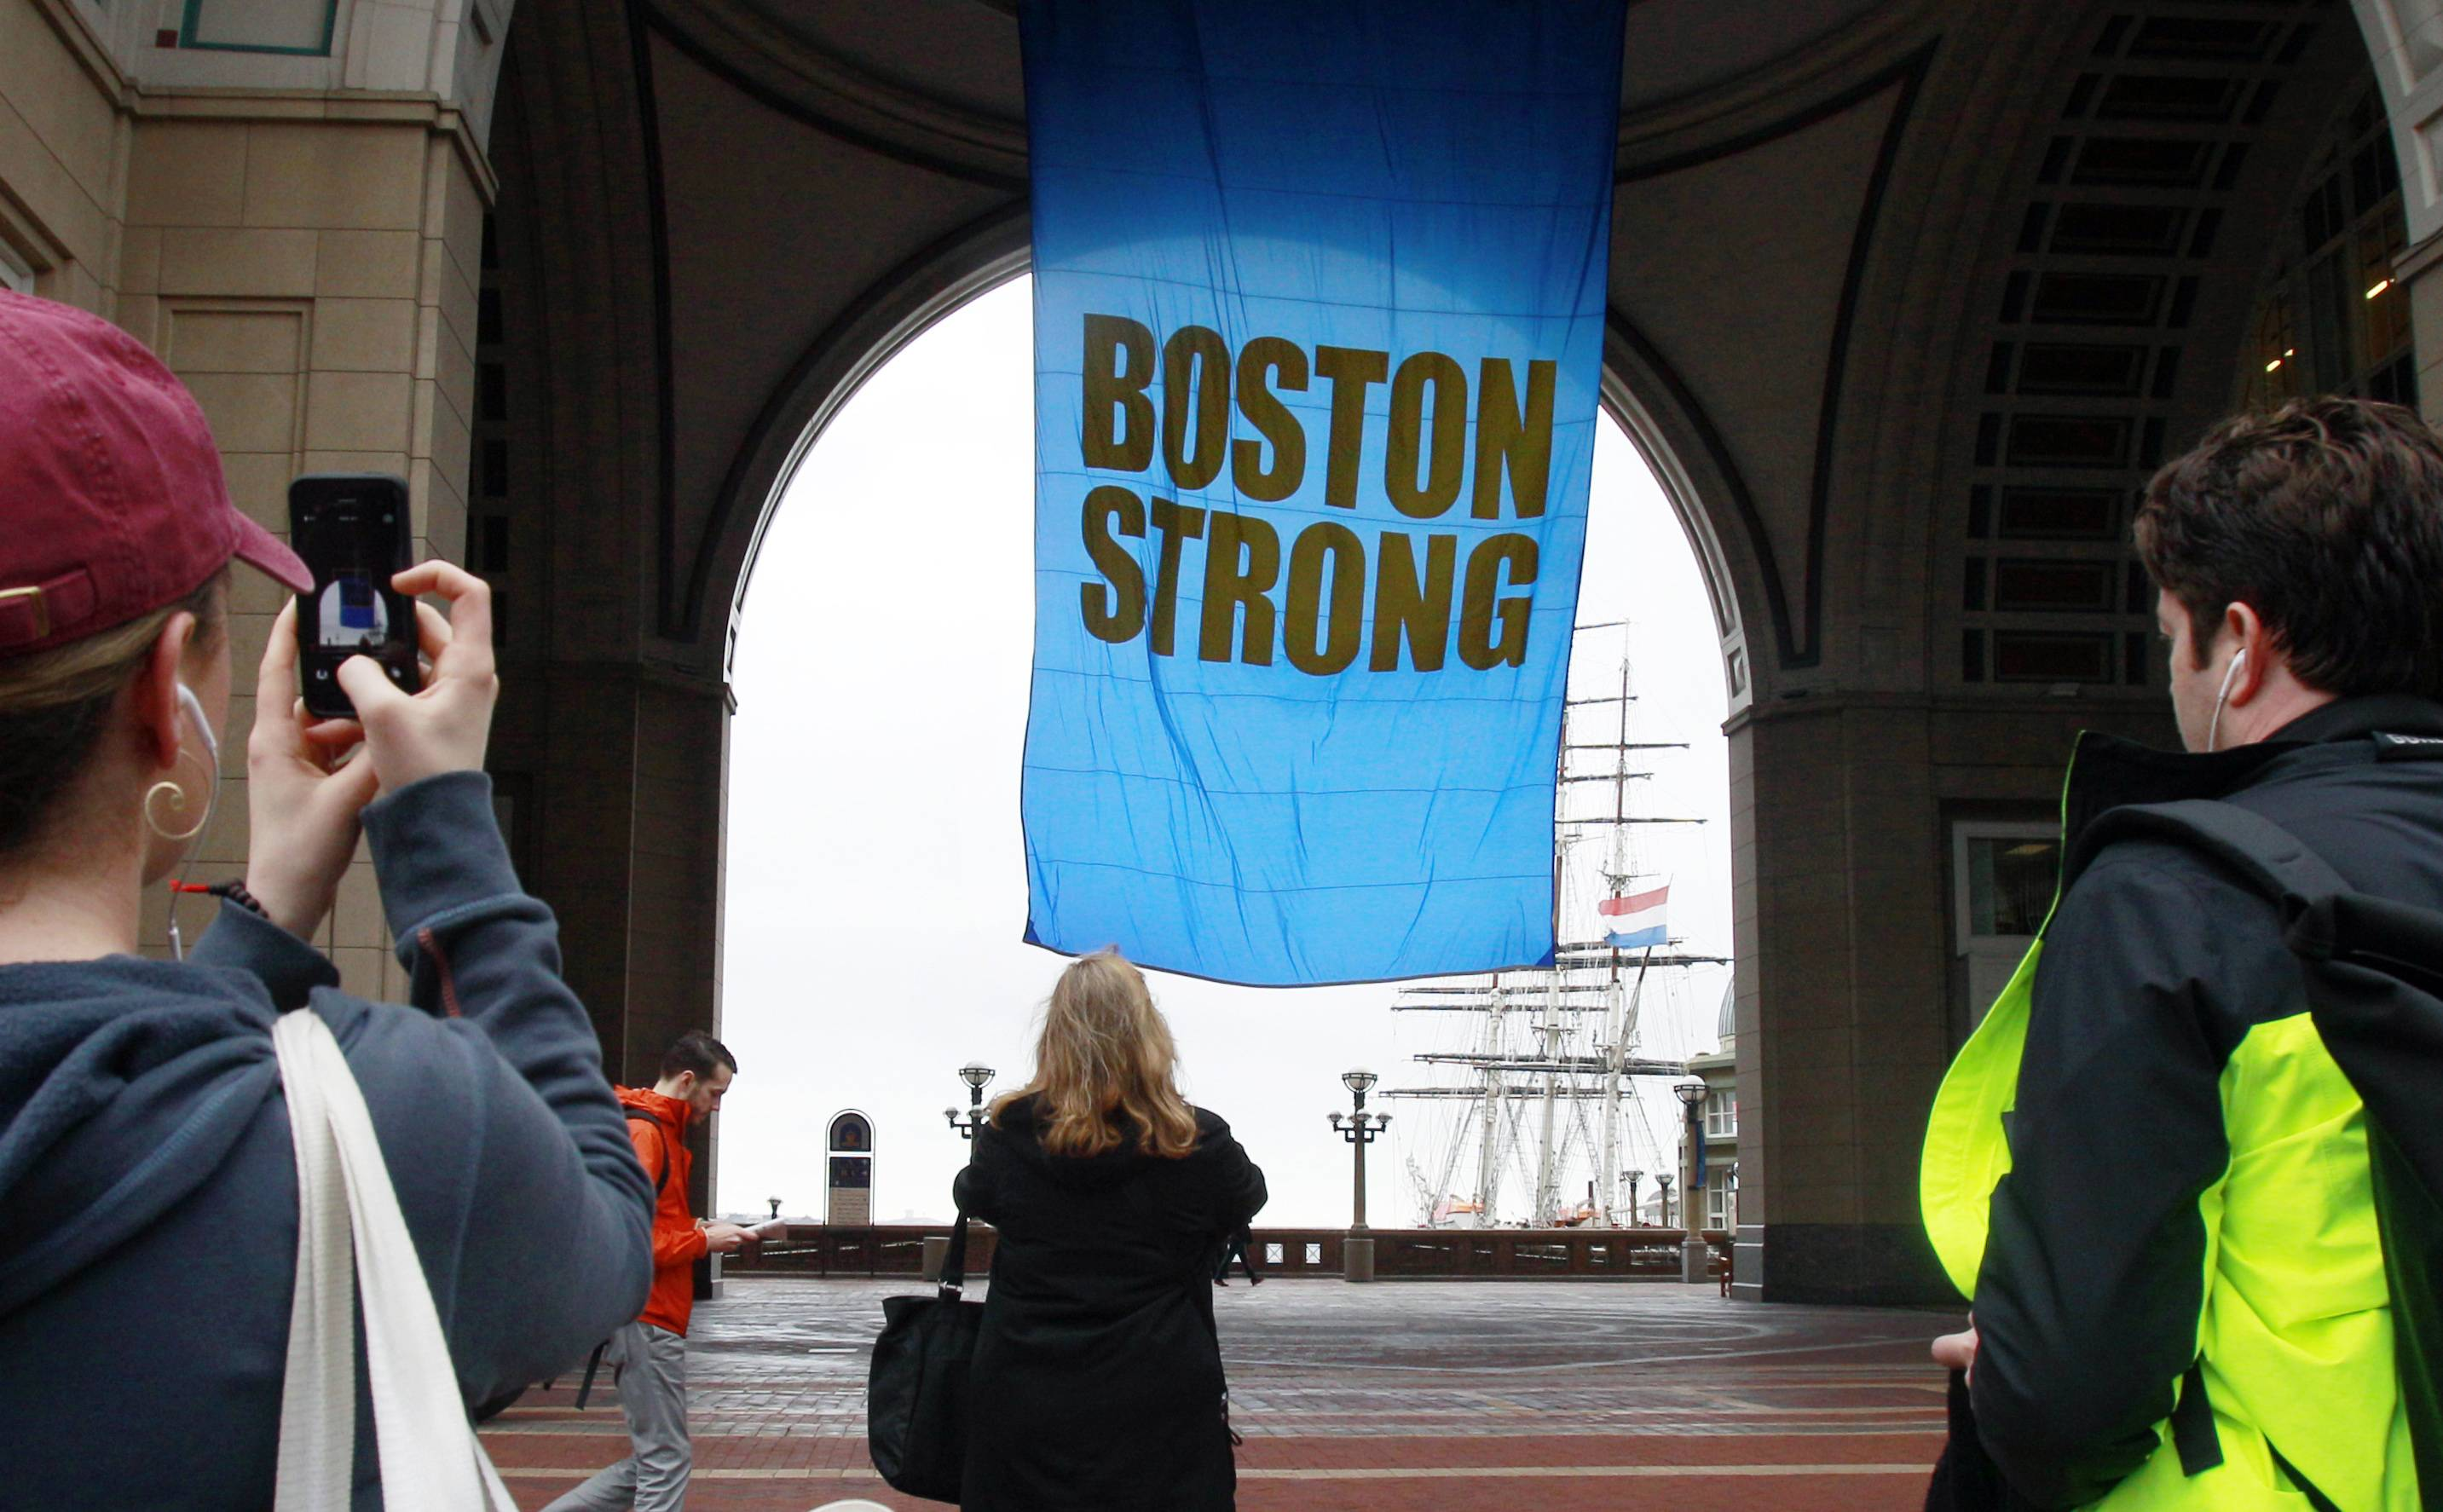 Solemn tributes mark Boston Marathon bombing